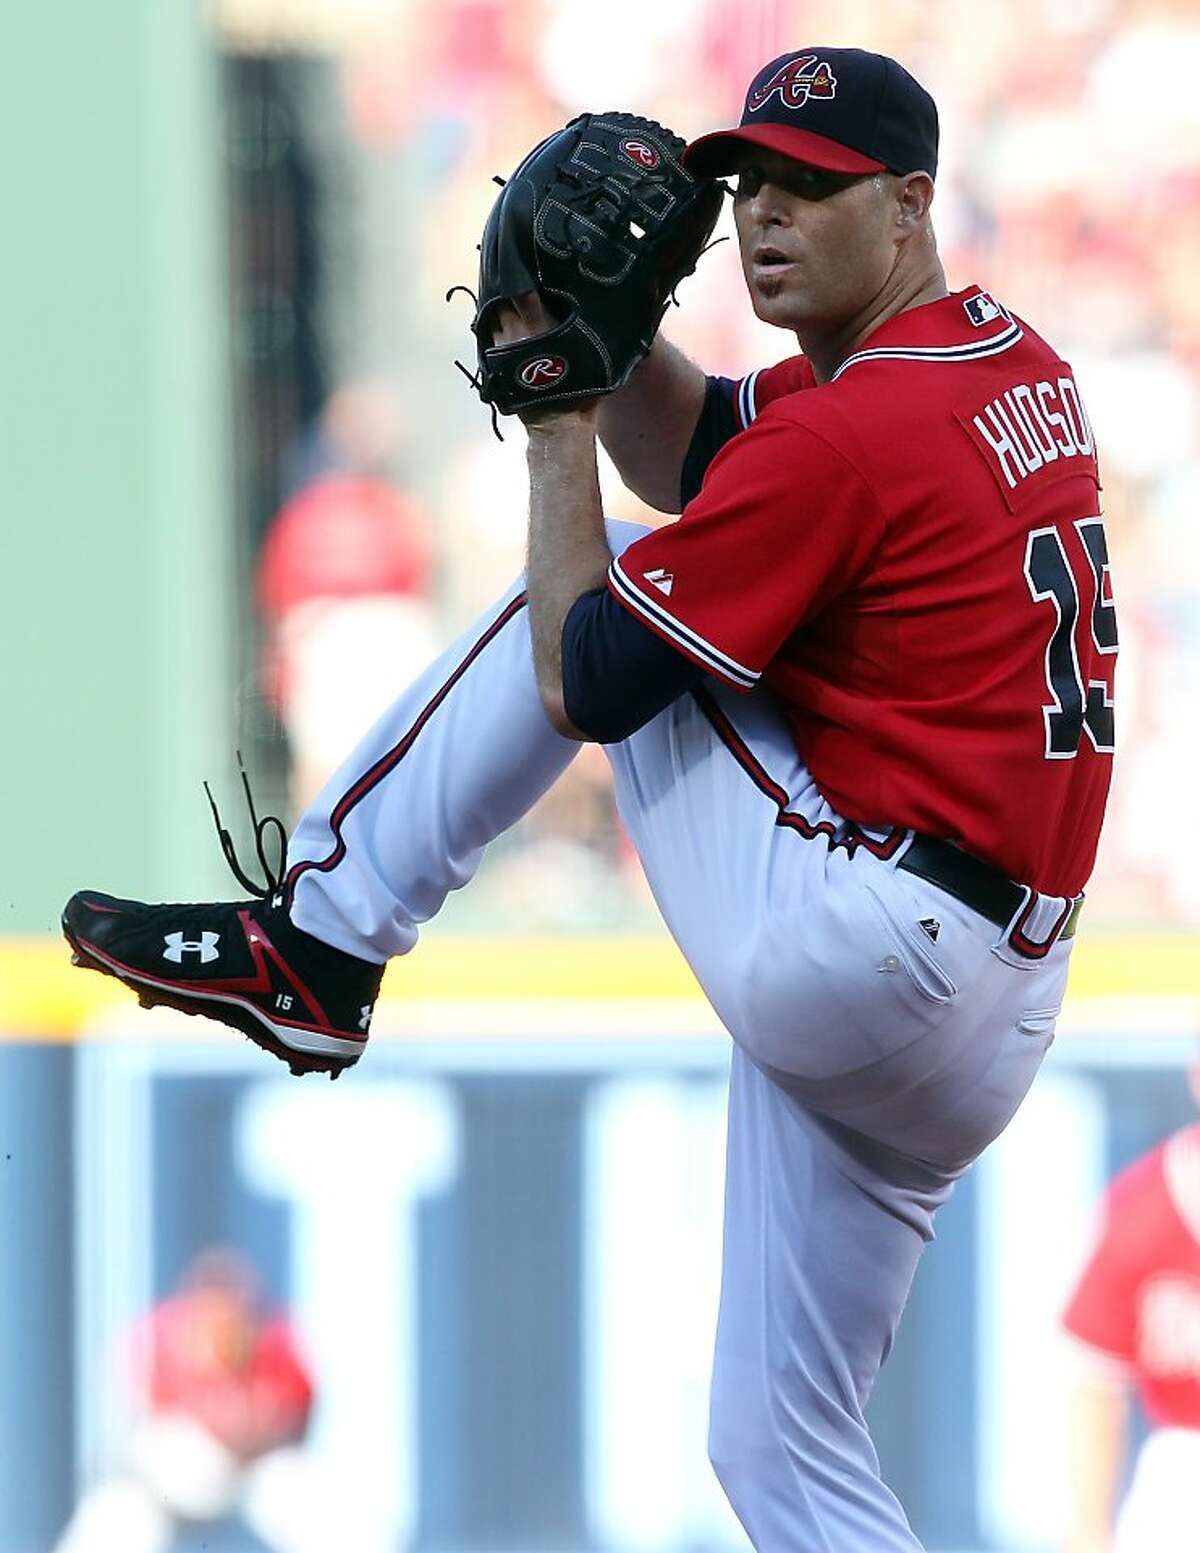 101010 Atlanta - Atlanta Braves pitcher Tim Hudson delivers a pitch against the San Francisco Giants during 1st inning action in game 3 of the NLDS at Turner Field in Atlanta on Sunday, Oct. 10, 2010. Curtis Compton ccompton@ajc.com